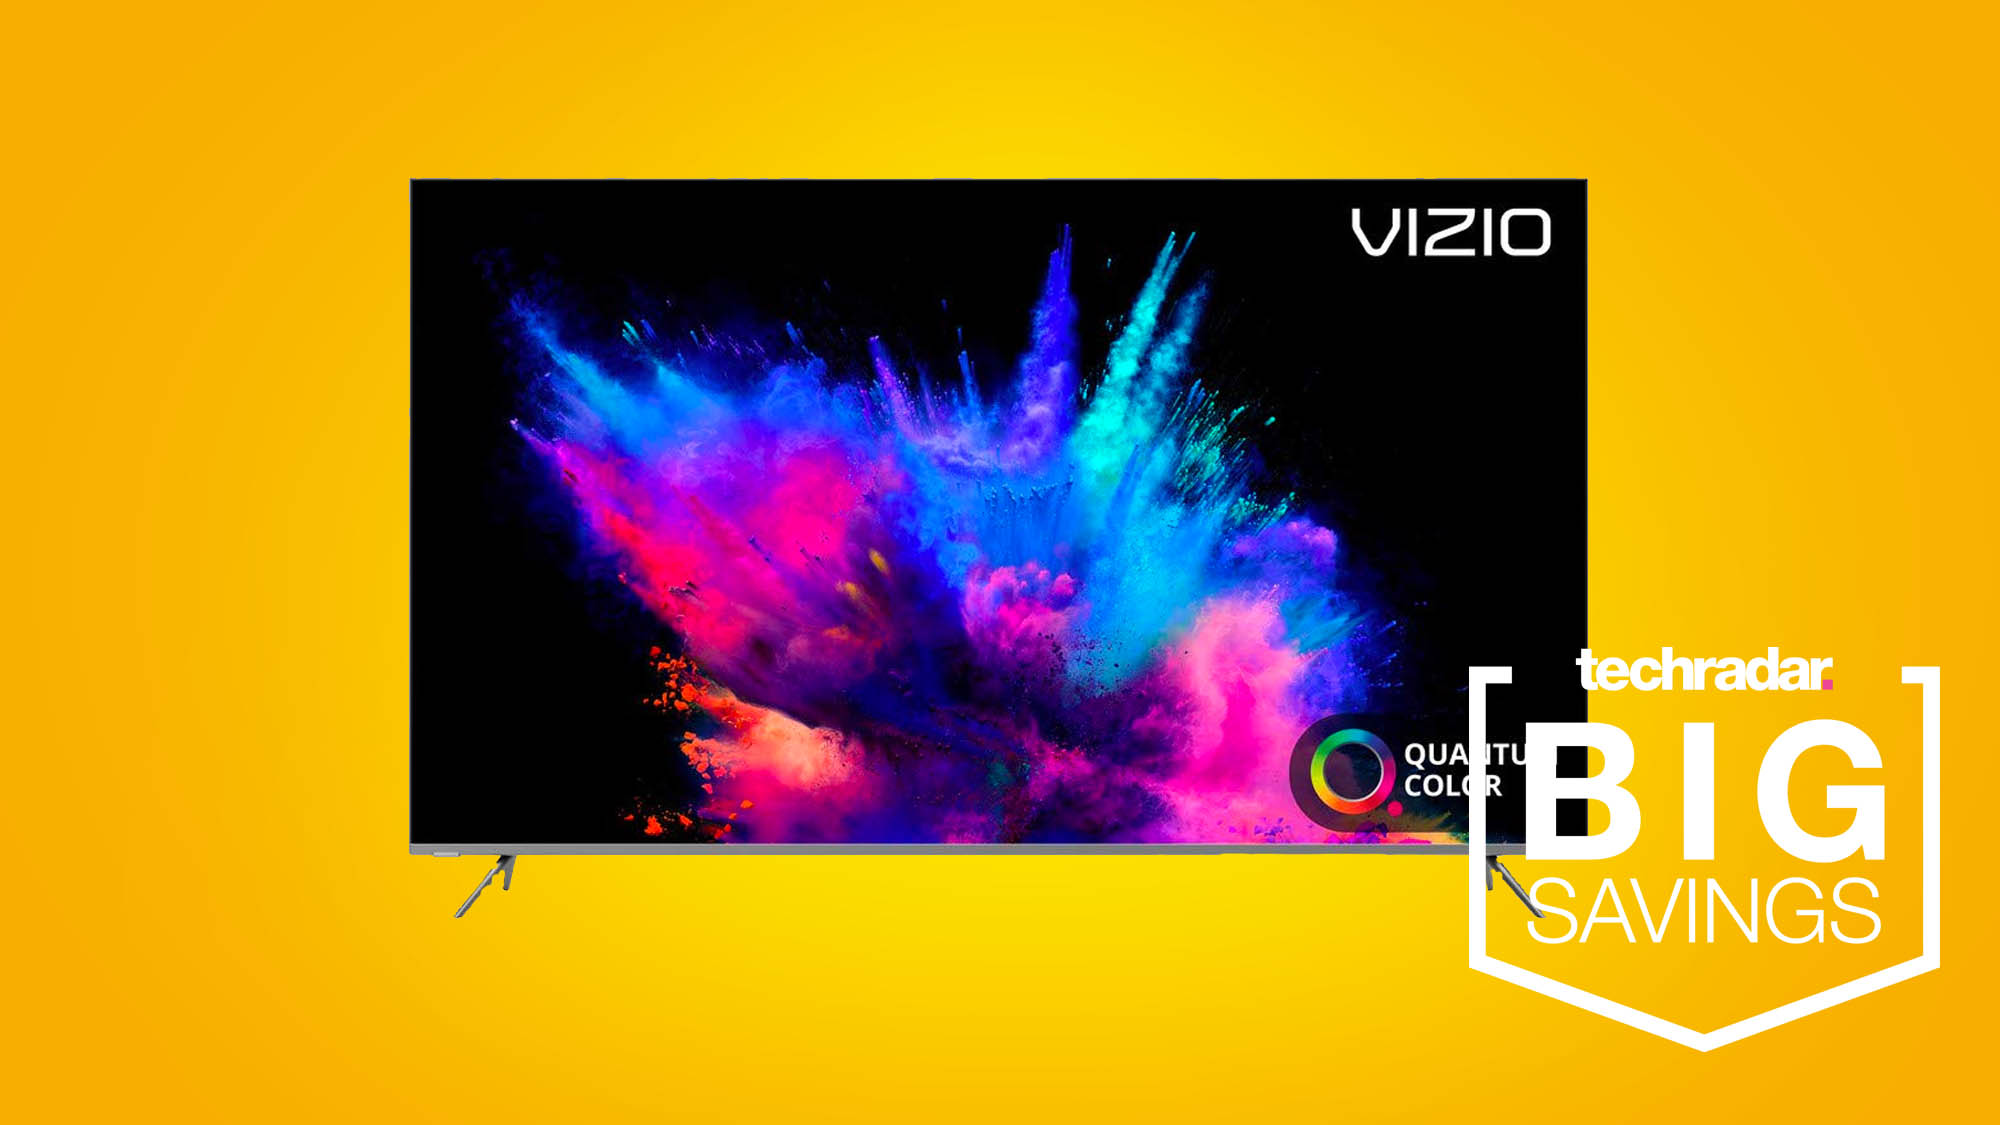 This 75-inch 4K TV is $1000 cheaper in outstanding Black Friday deal